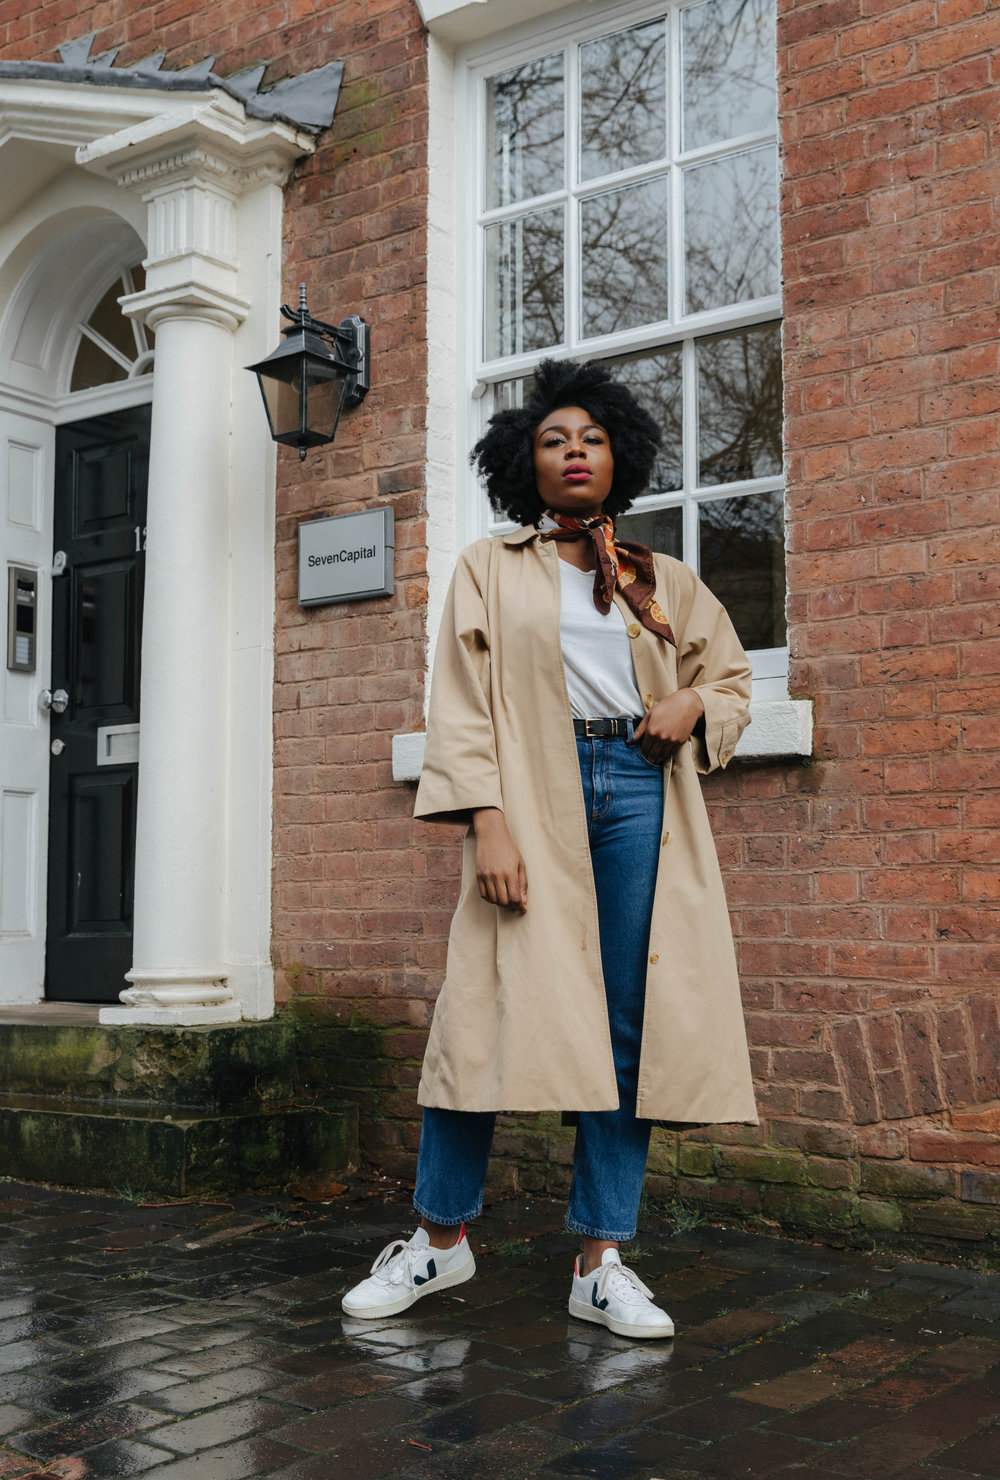 How to wear a trench coat - 3 simple outfit ideas